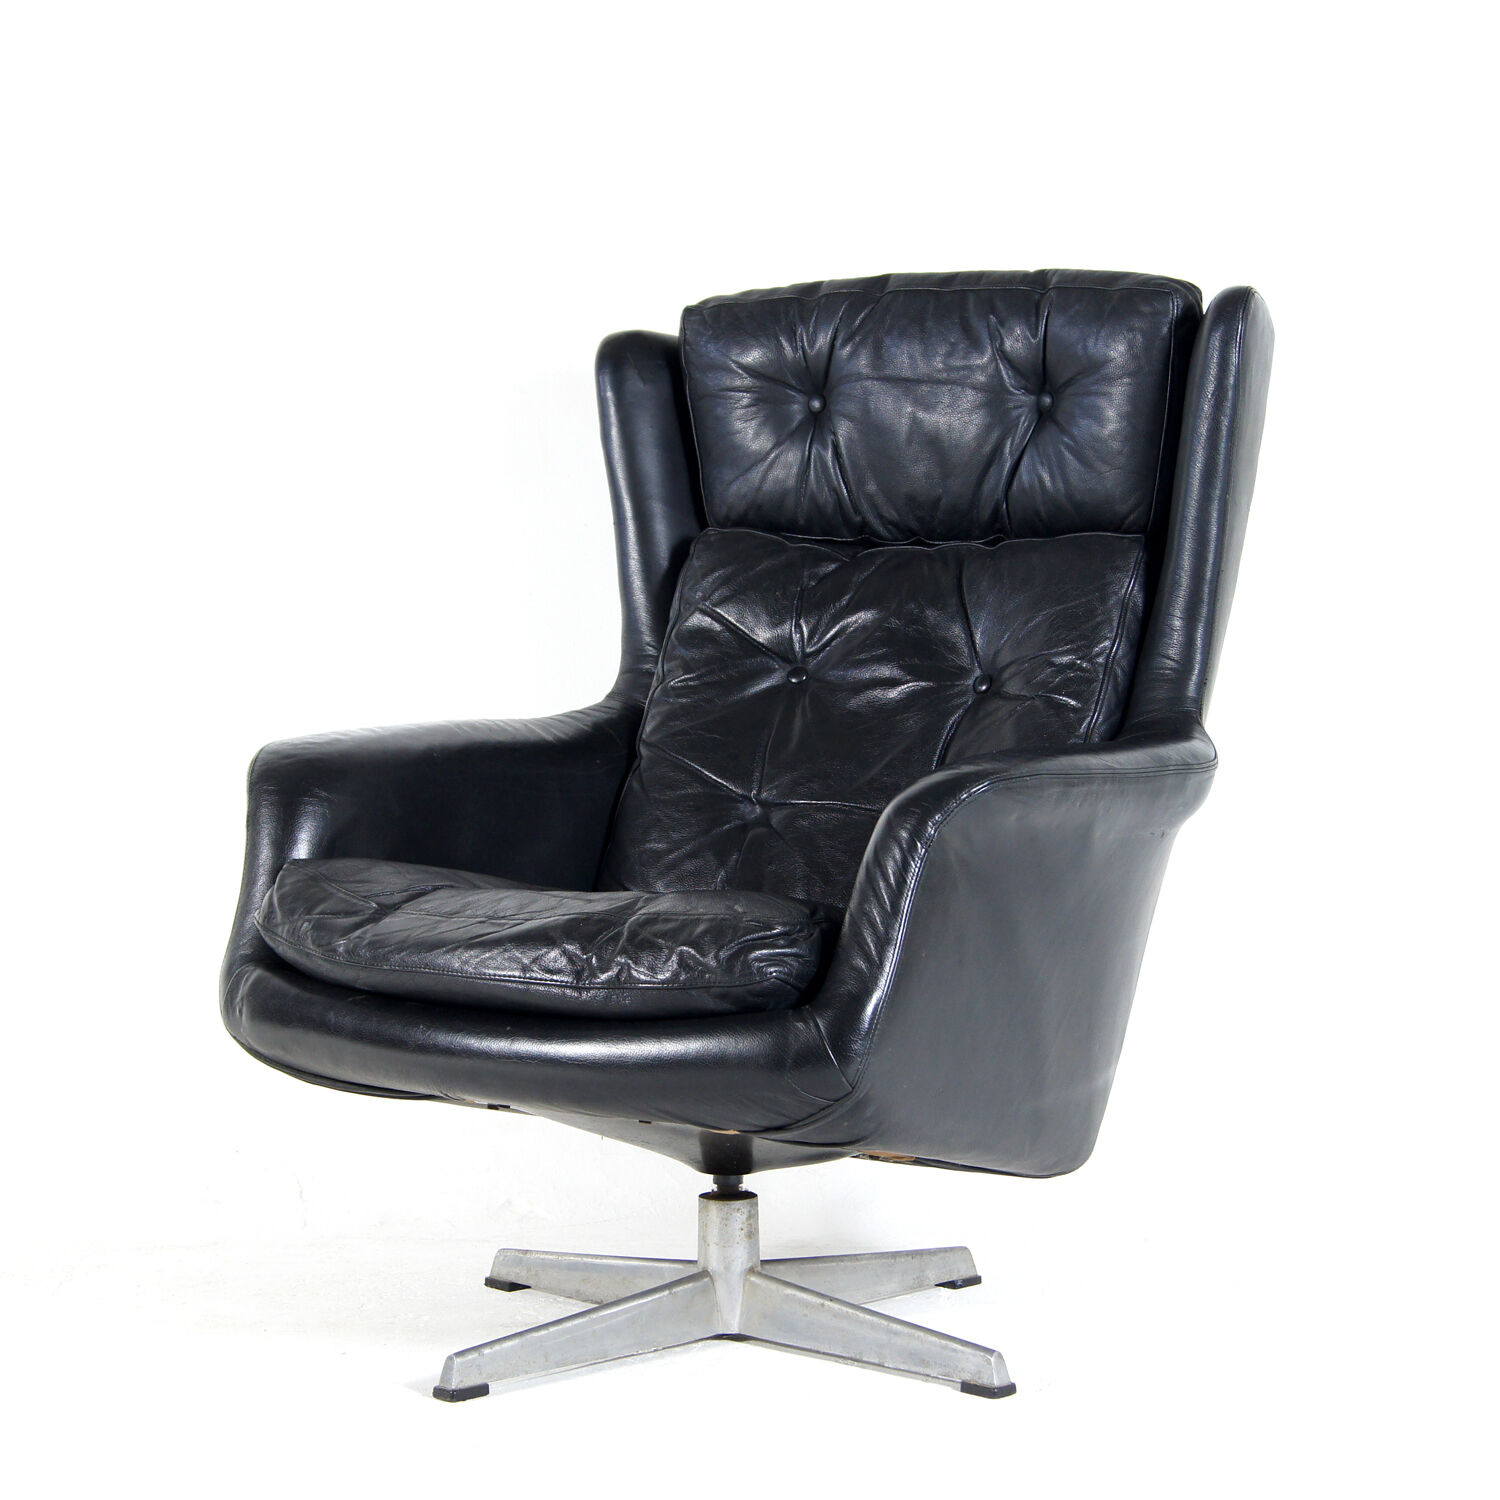 Retro Vintage Danish Swivel Base Leather Black Armchair Lounge Egg Chair 60s 70s